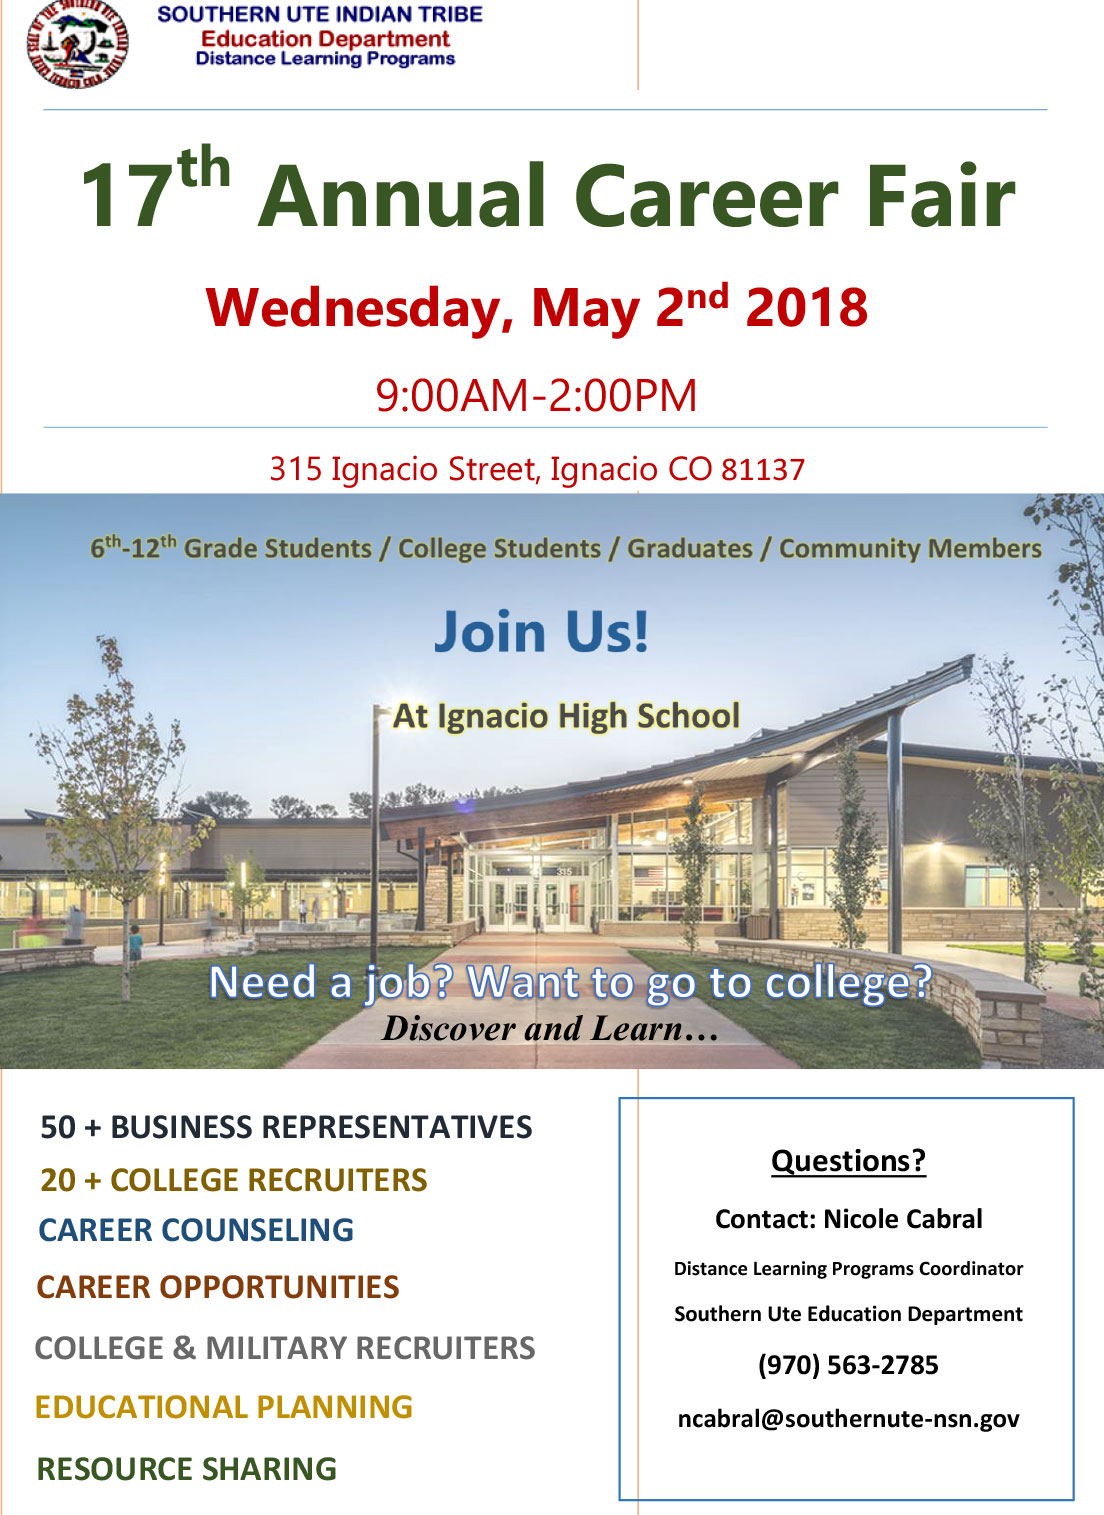 17th-Annual-Career-Fair-2018-Flyer